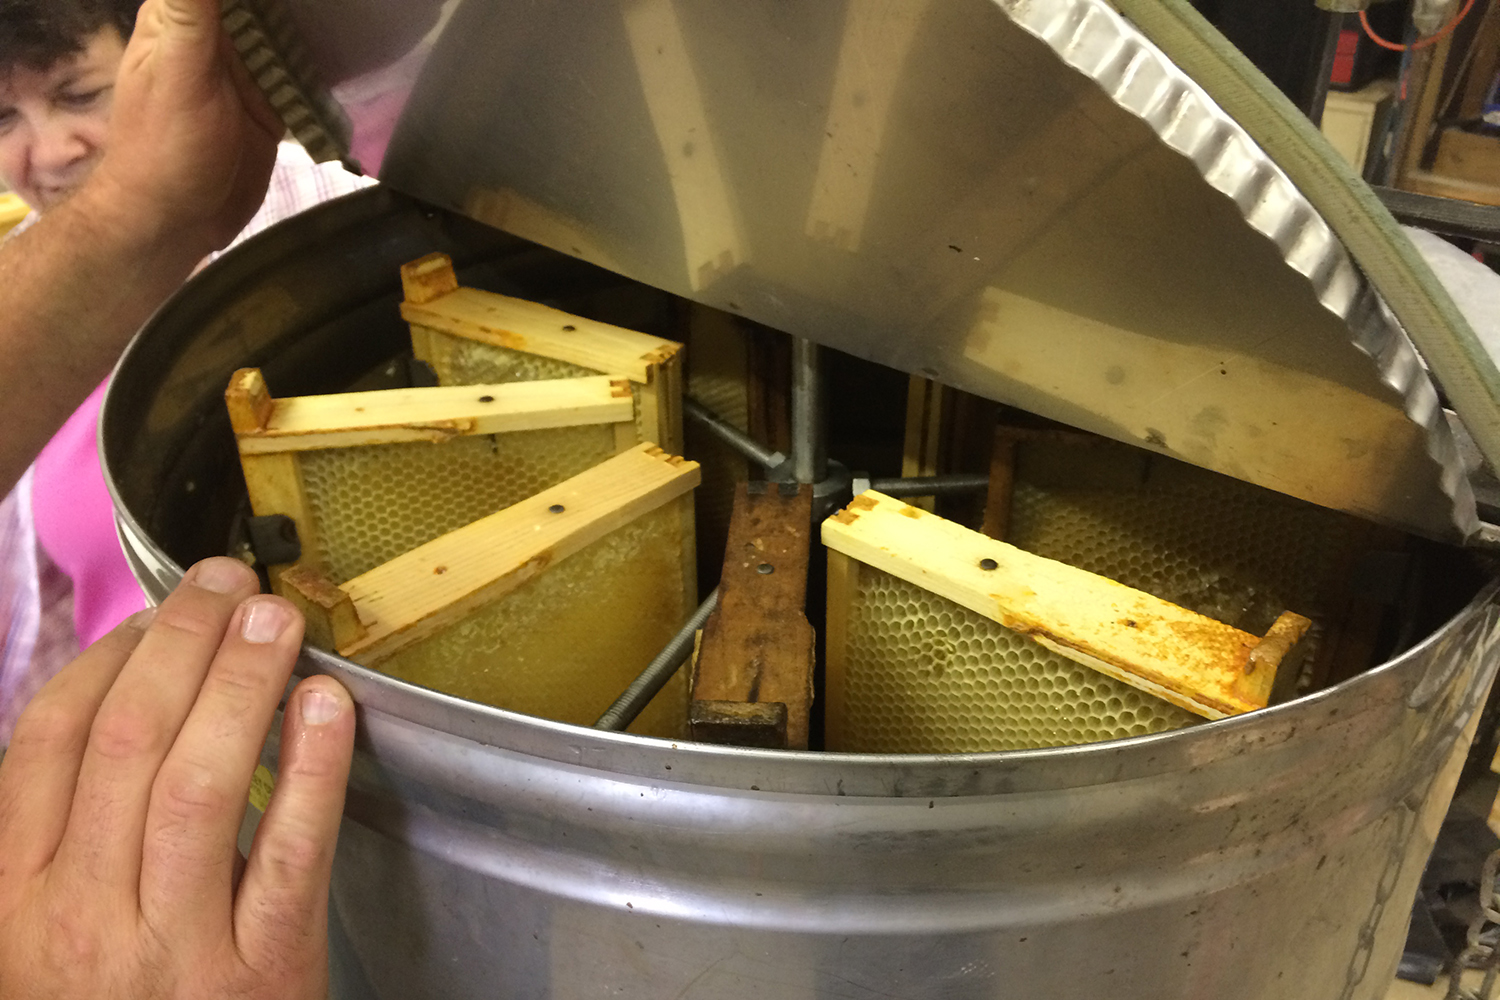 A view from the top of the inside of a honey extractor, a stainless steel barrel with honeycomb frames installed like spokes on a wheel